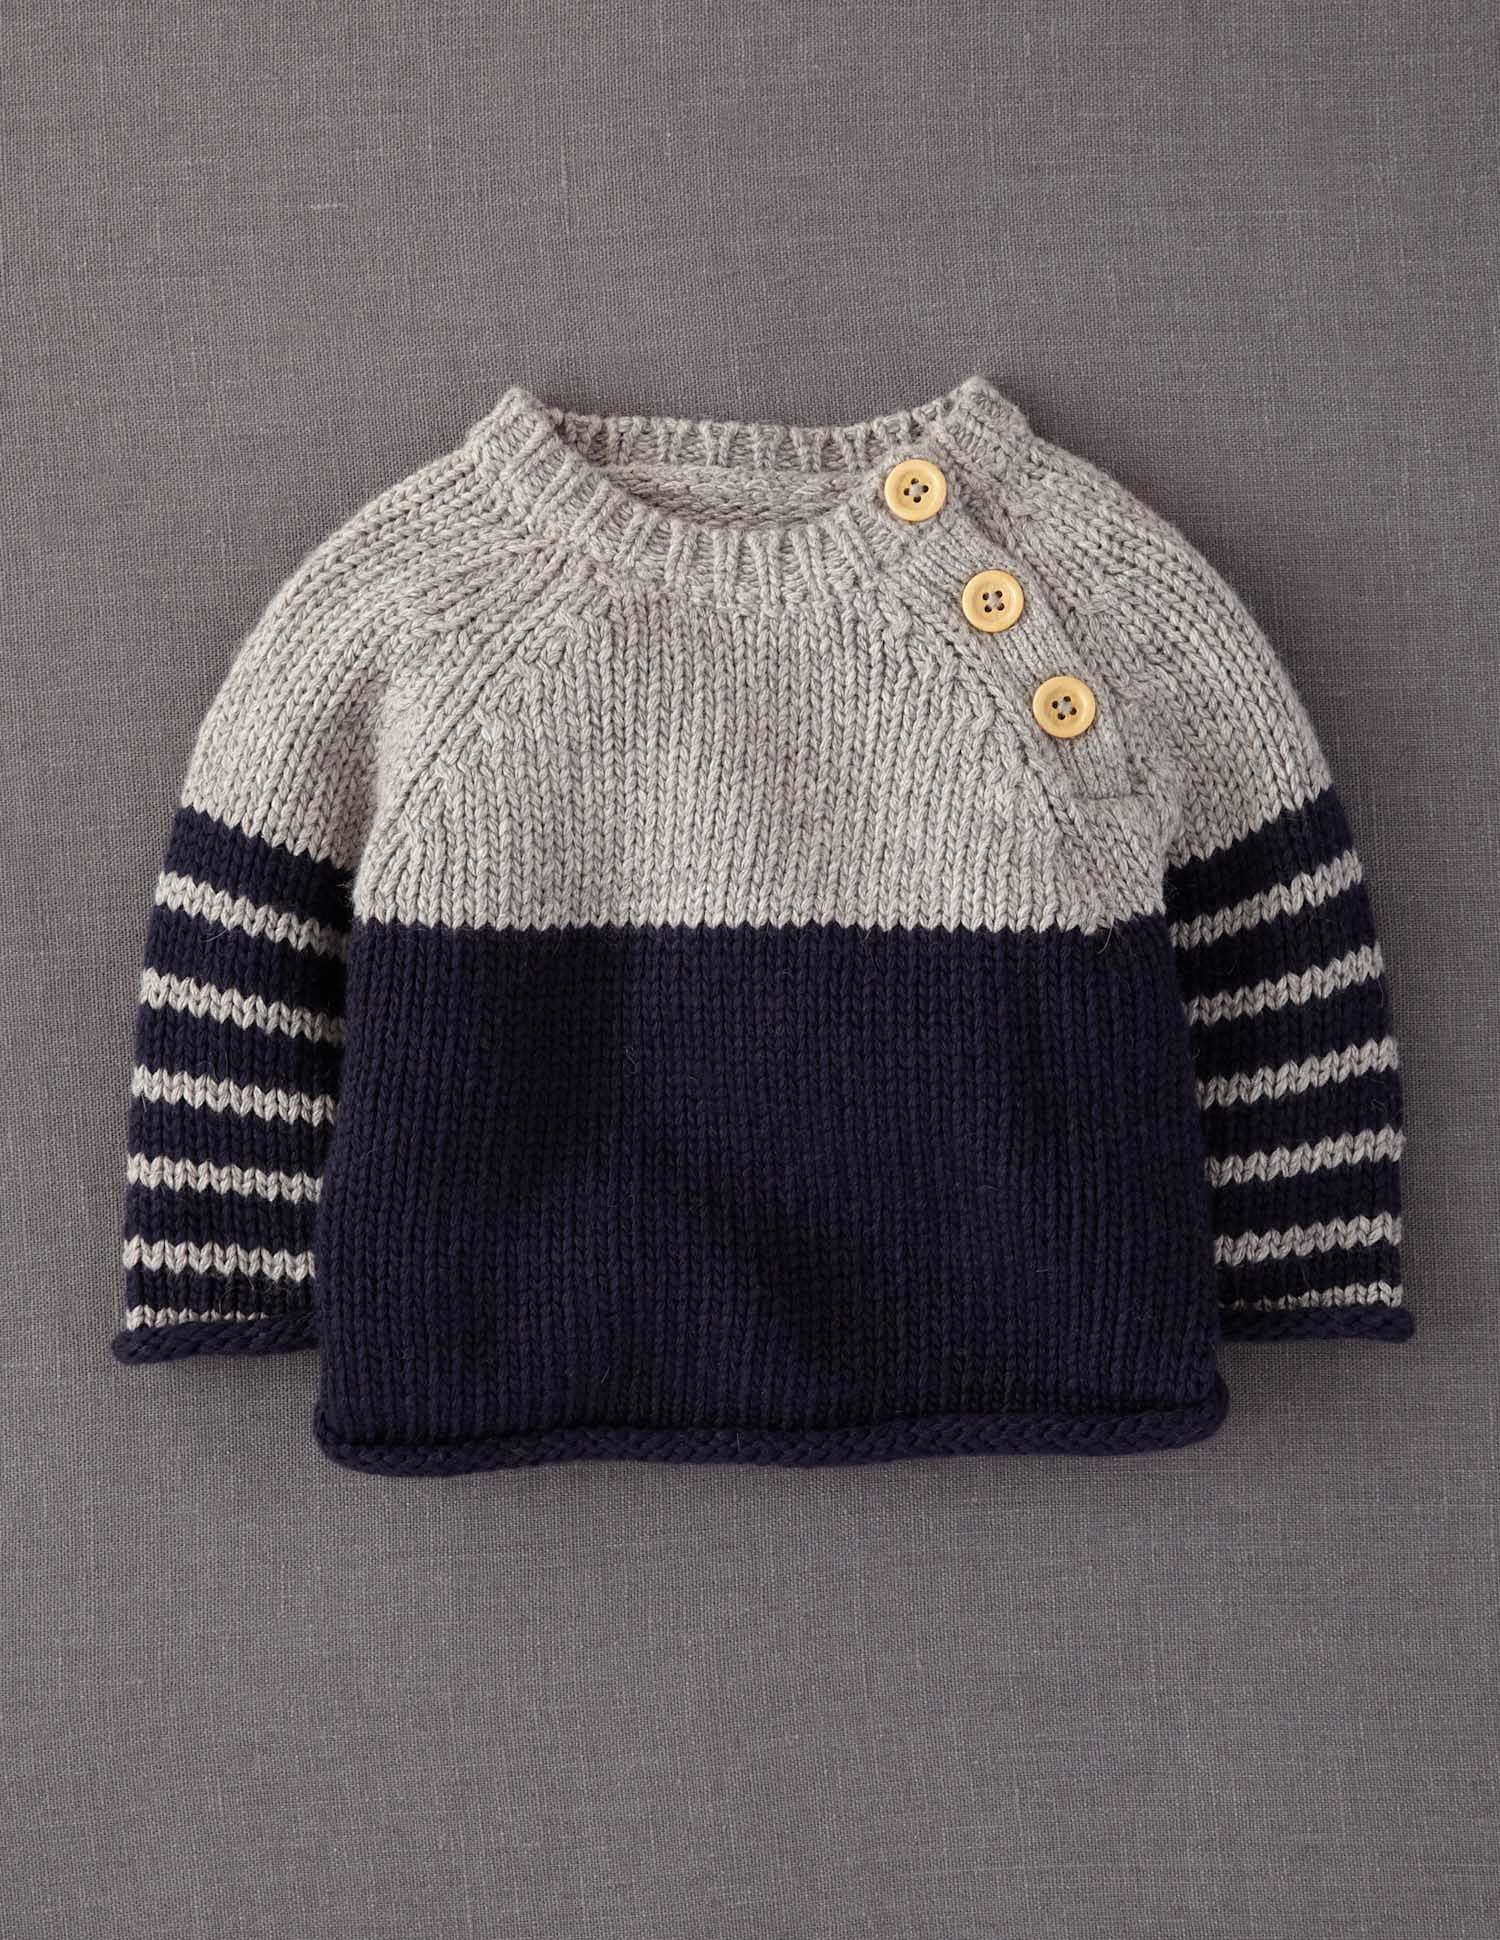 Knitting Patterns For Toddler Boy Sweaters : Jersey de invierno nino DIY en Bordar Vigo Informacion ...